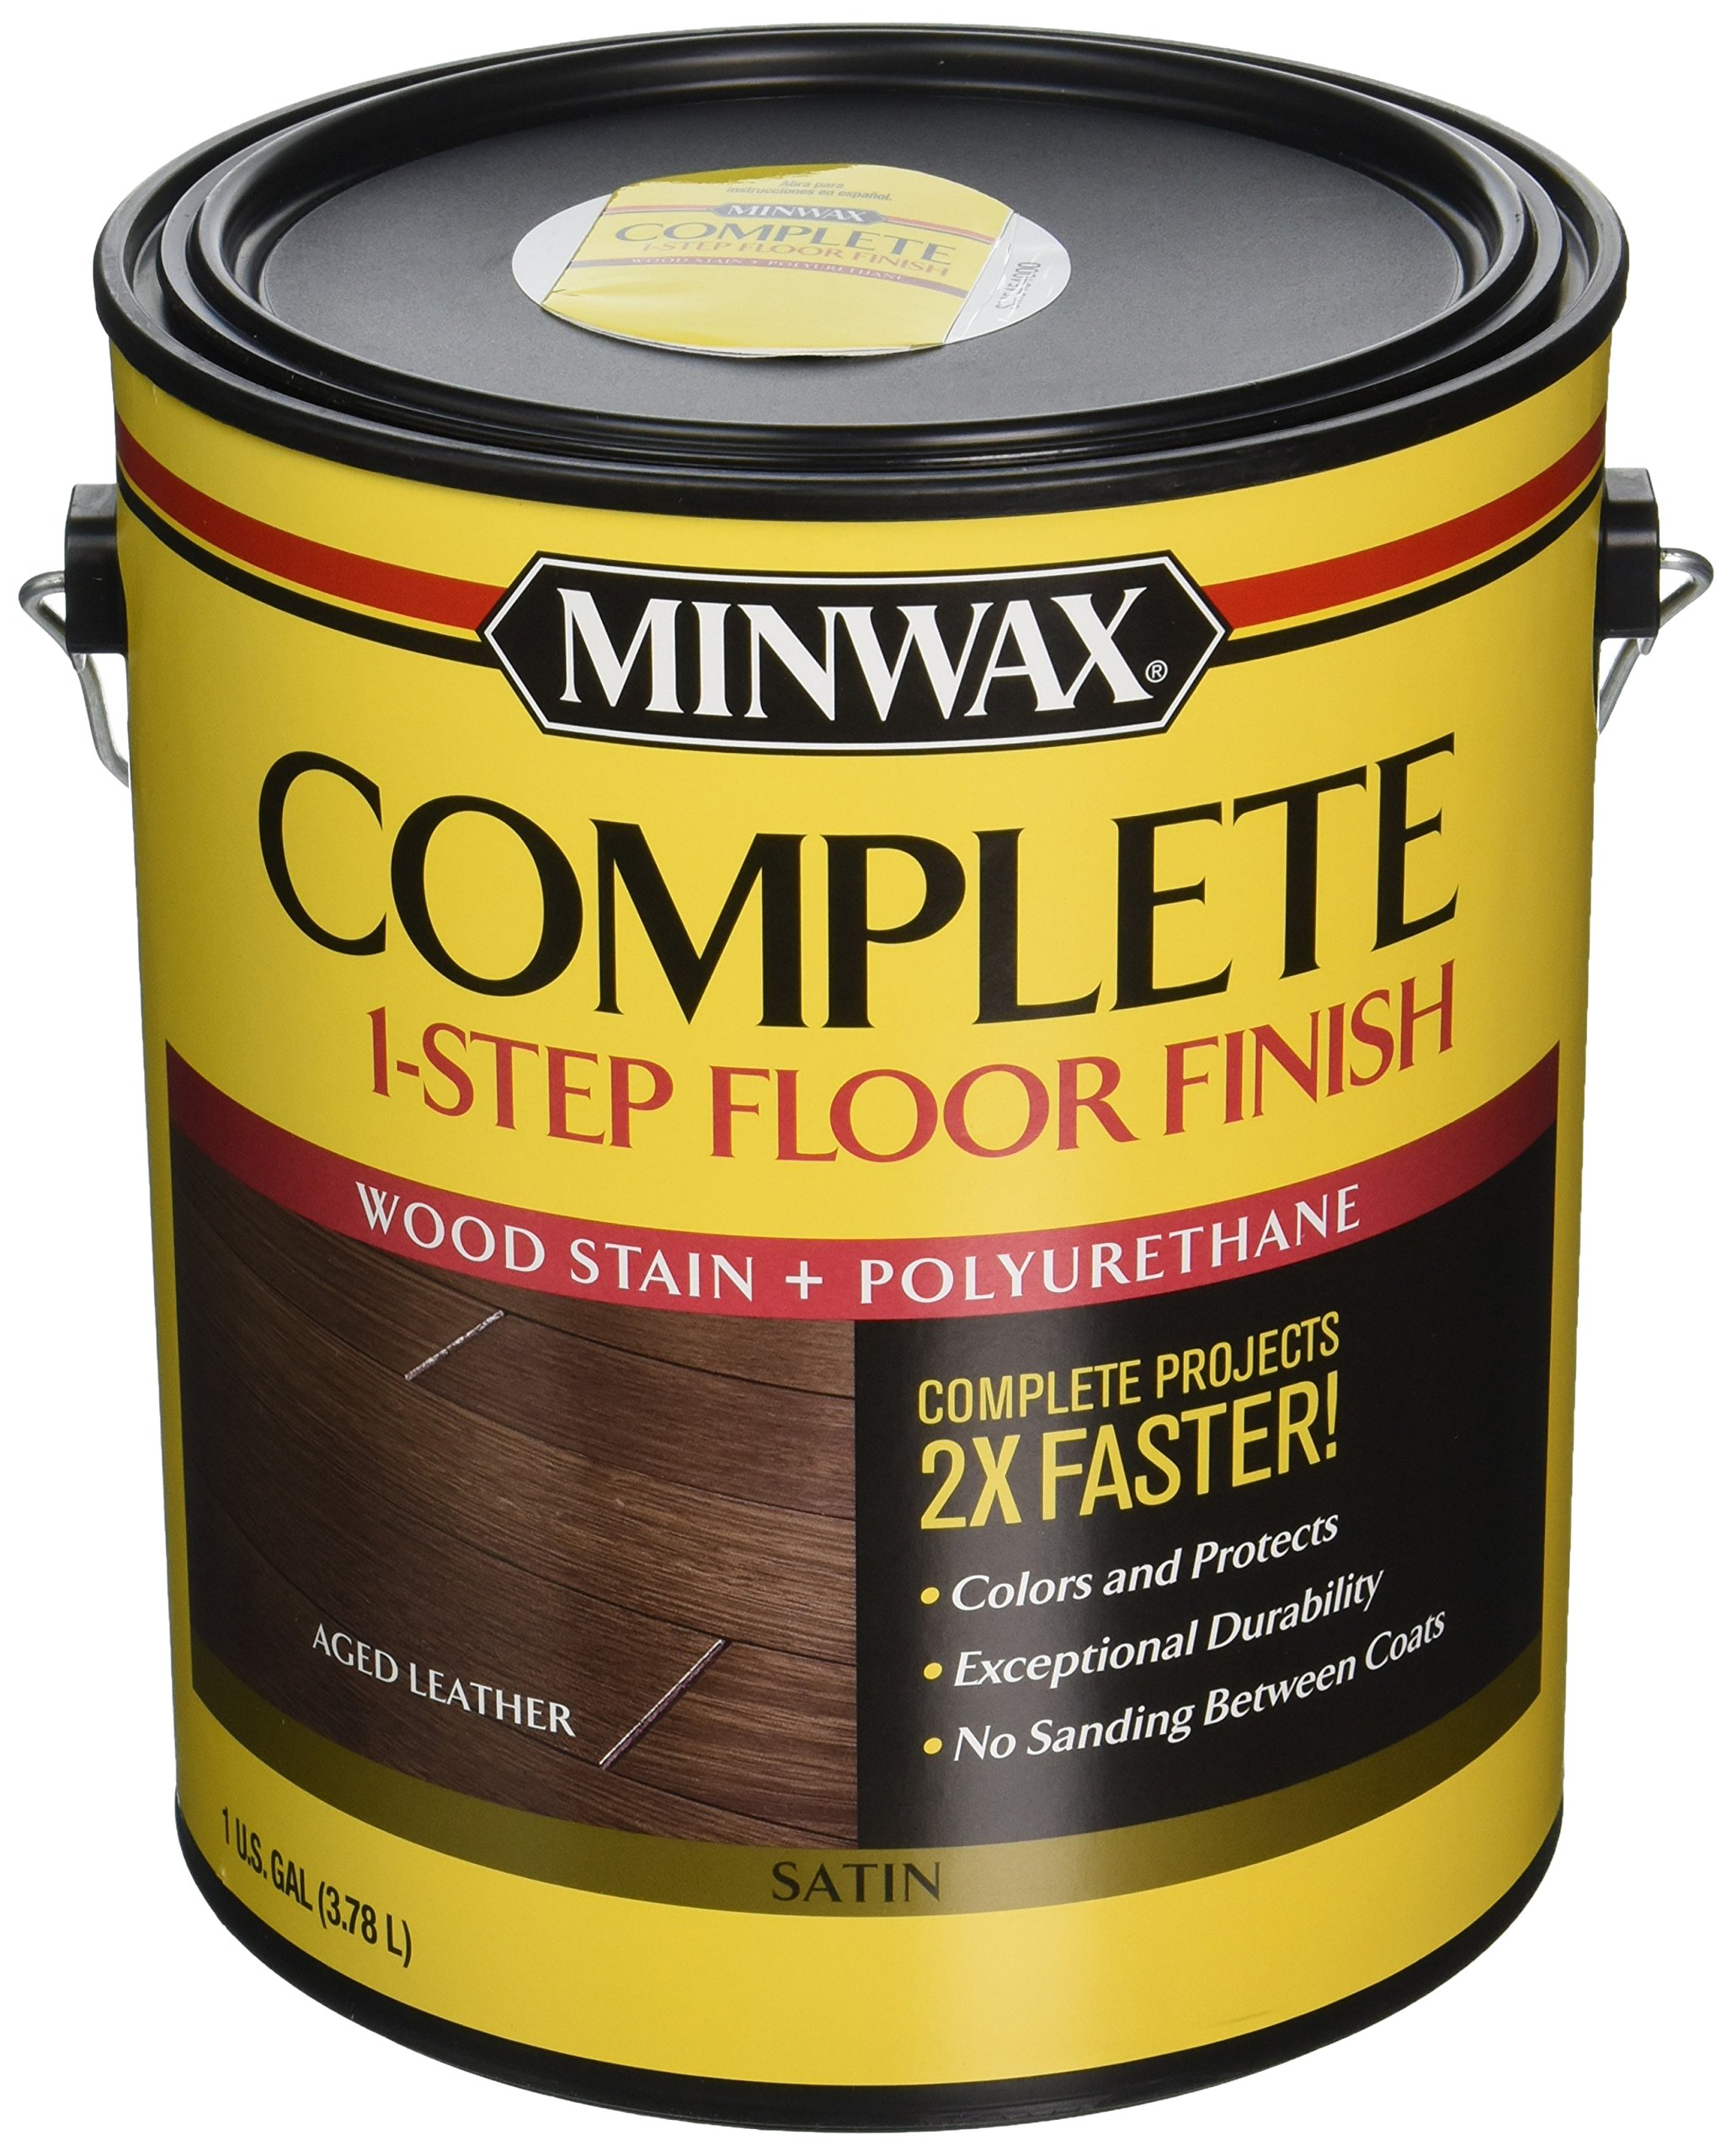 Minwax 672050000 67205 1G Satin Aged Leather Complete 1-Step Floor Finish